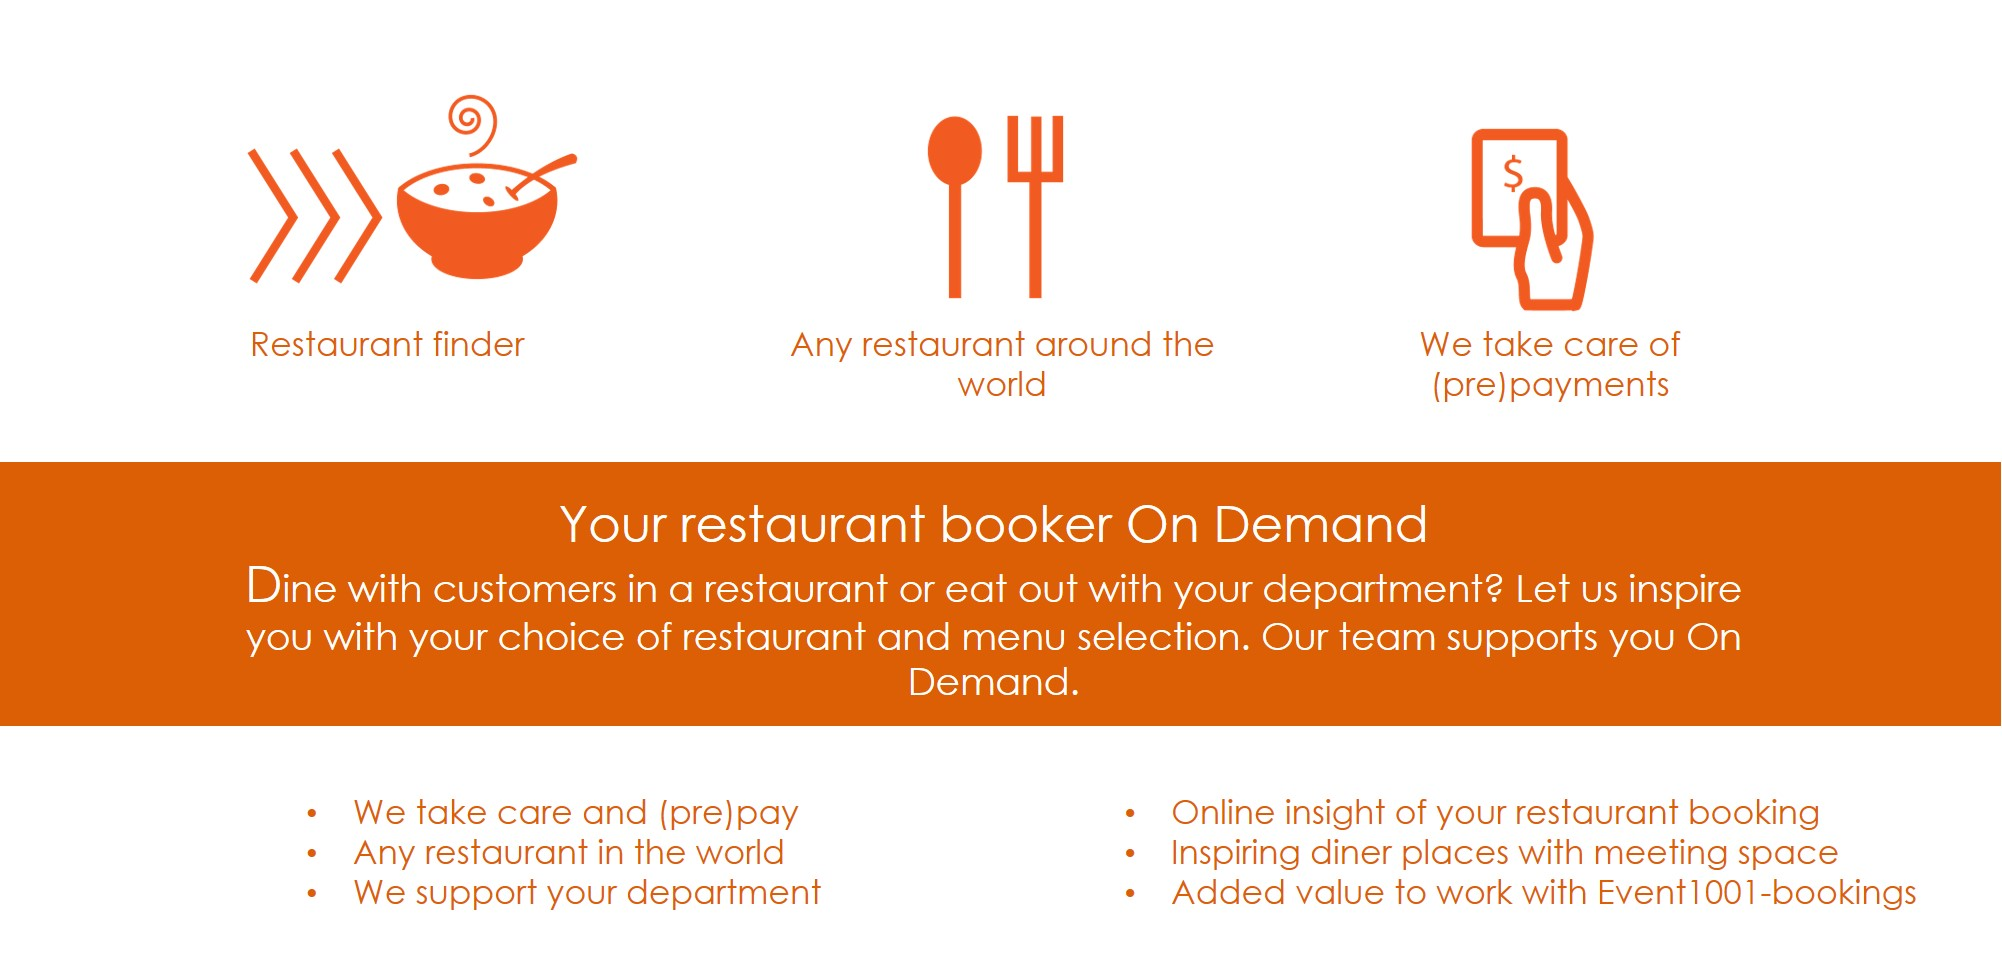 We are your dinner & meeting place supporter Would you like to dine with your customers in a restaurant or eat out with your department? Let us inspire you with your choice of restaurant and menu selection. Event1001-bookings can also book and cater for your table or dinner arrangement with a meeting in any restaurant anywhere in the world. We can handle changes, dietary requirements, and number of people on your behalf, as well as payment and invoice processing so that you do not have to pay on site. This saves you from the related administrative work. Request for catering facilities at your office.